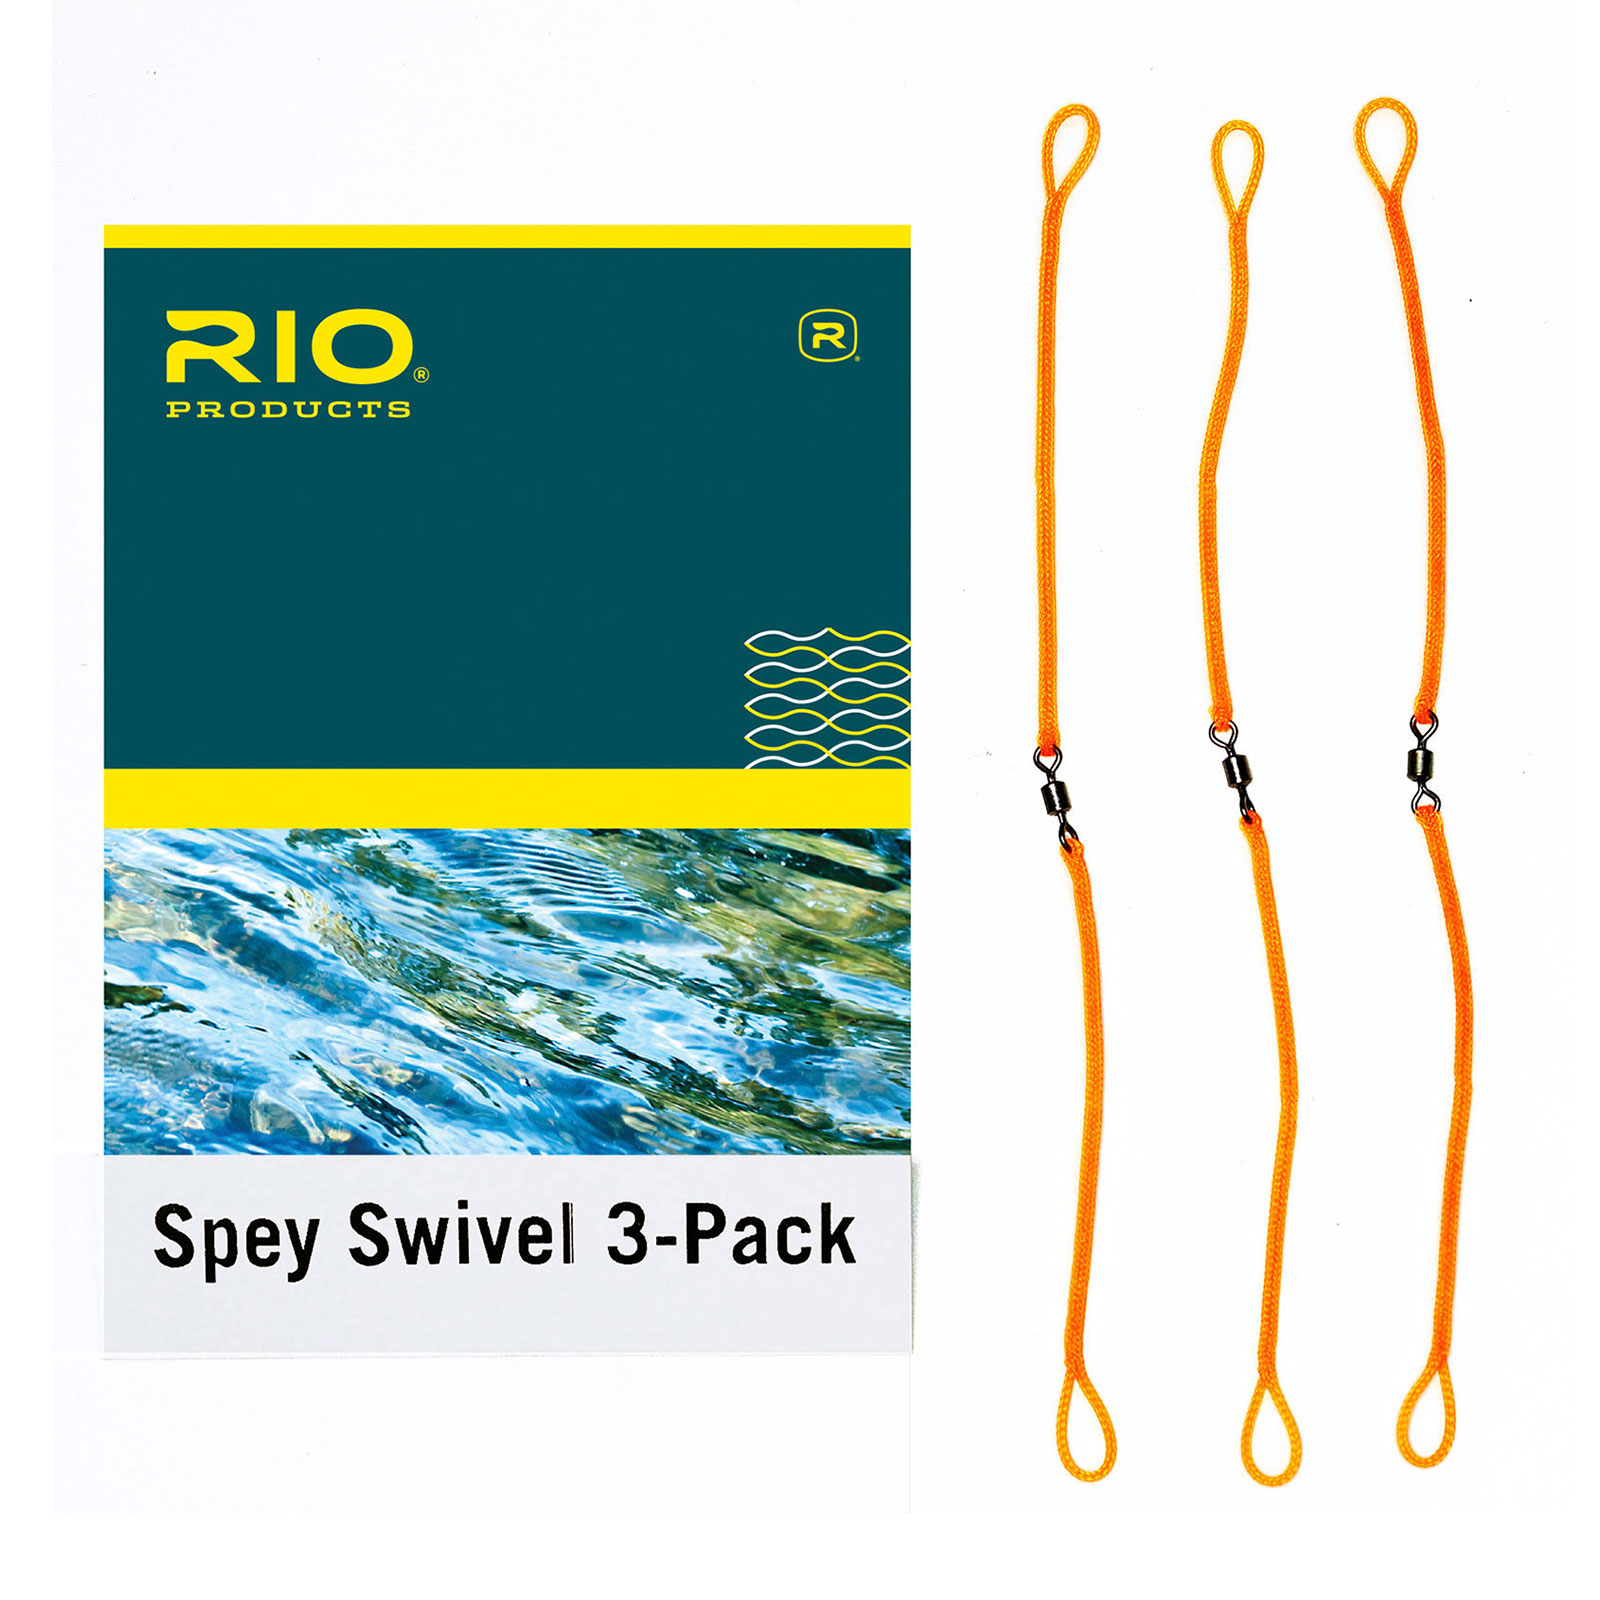 RIO - Anti Twist Tangle Spey Casting Swivel 3-Pack Fly Fishing Line Orange